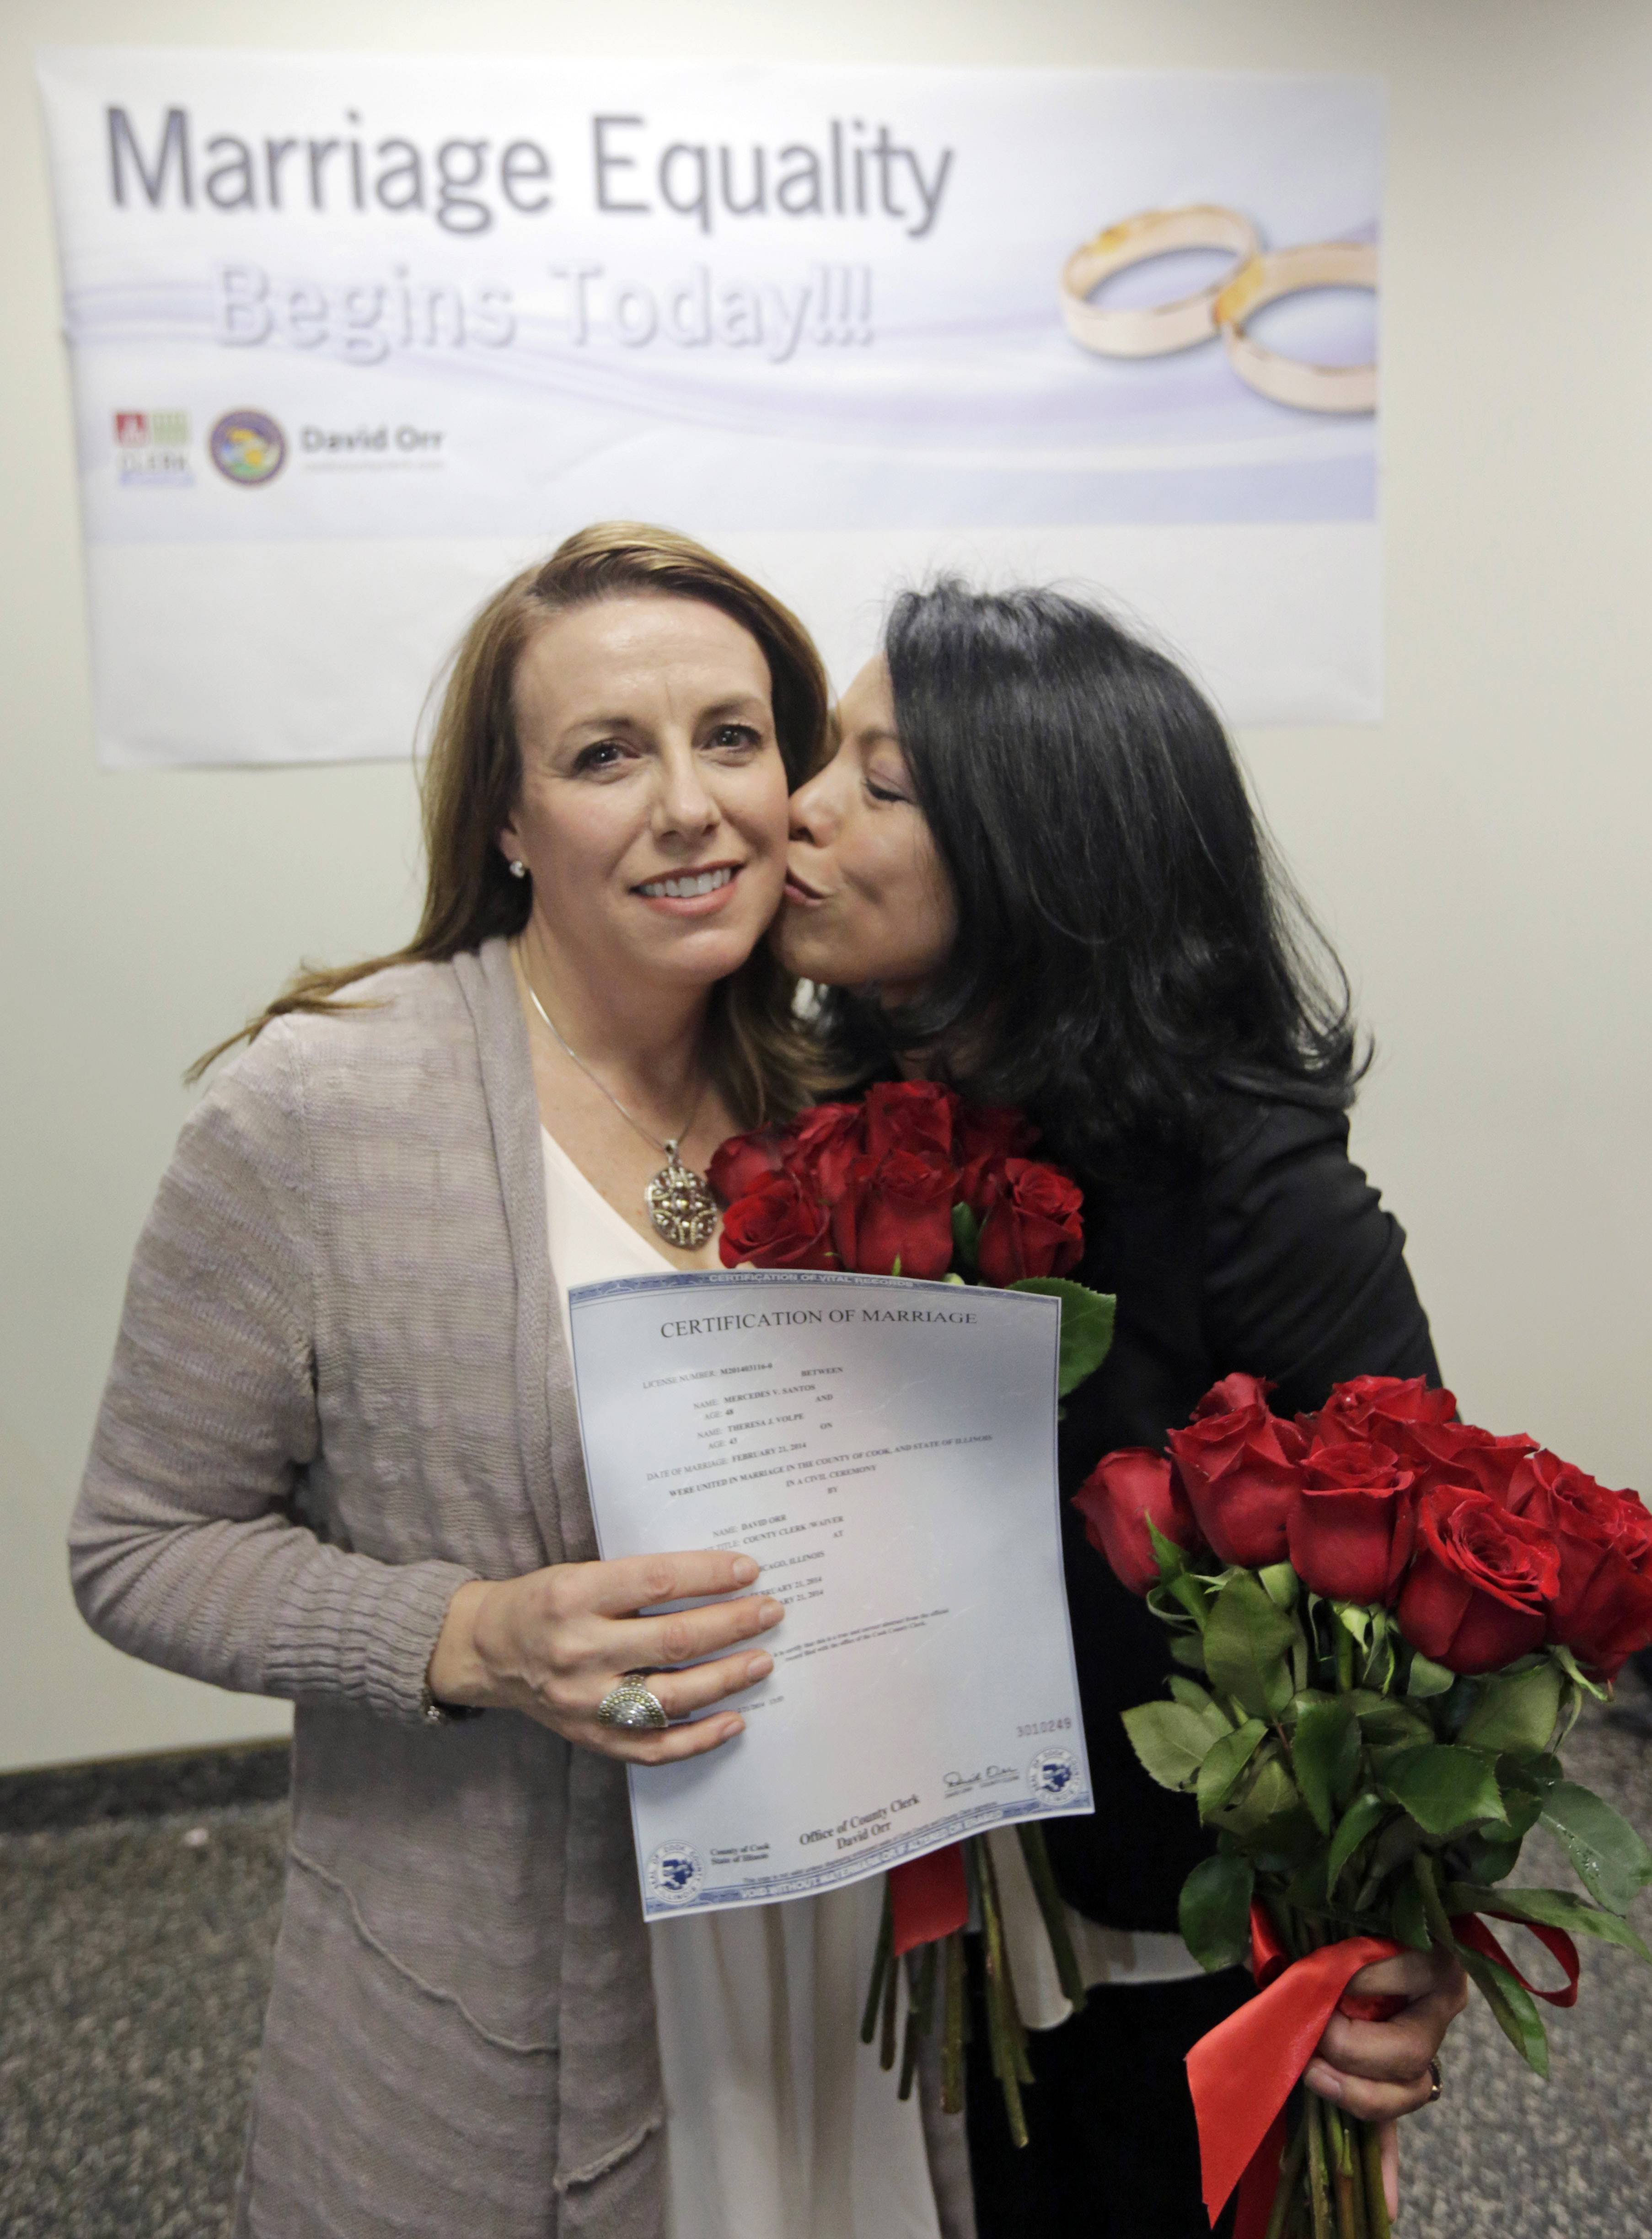 Gay marriage now law of land in Illinois